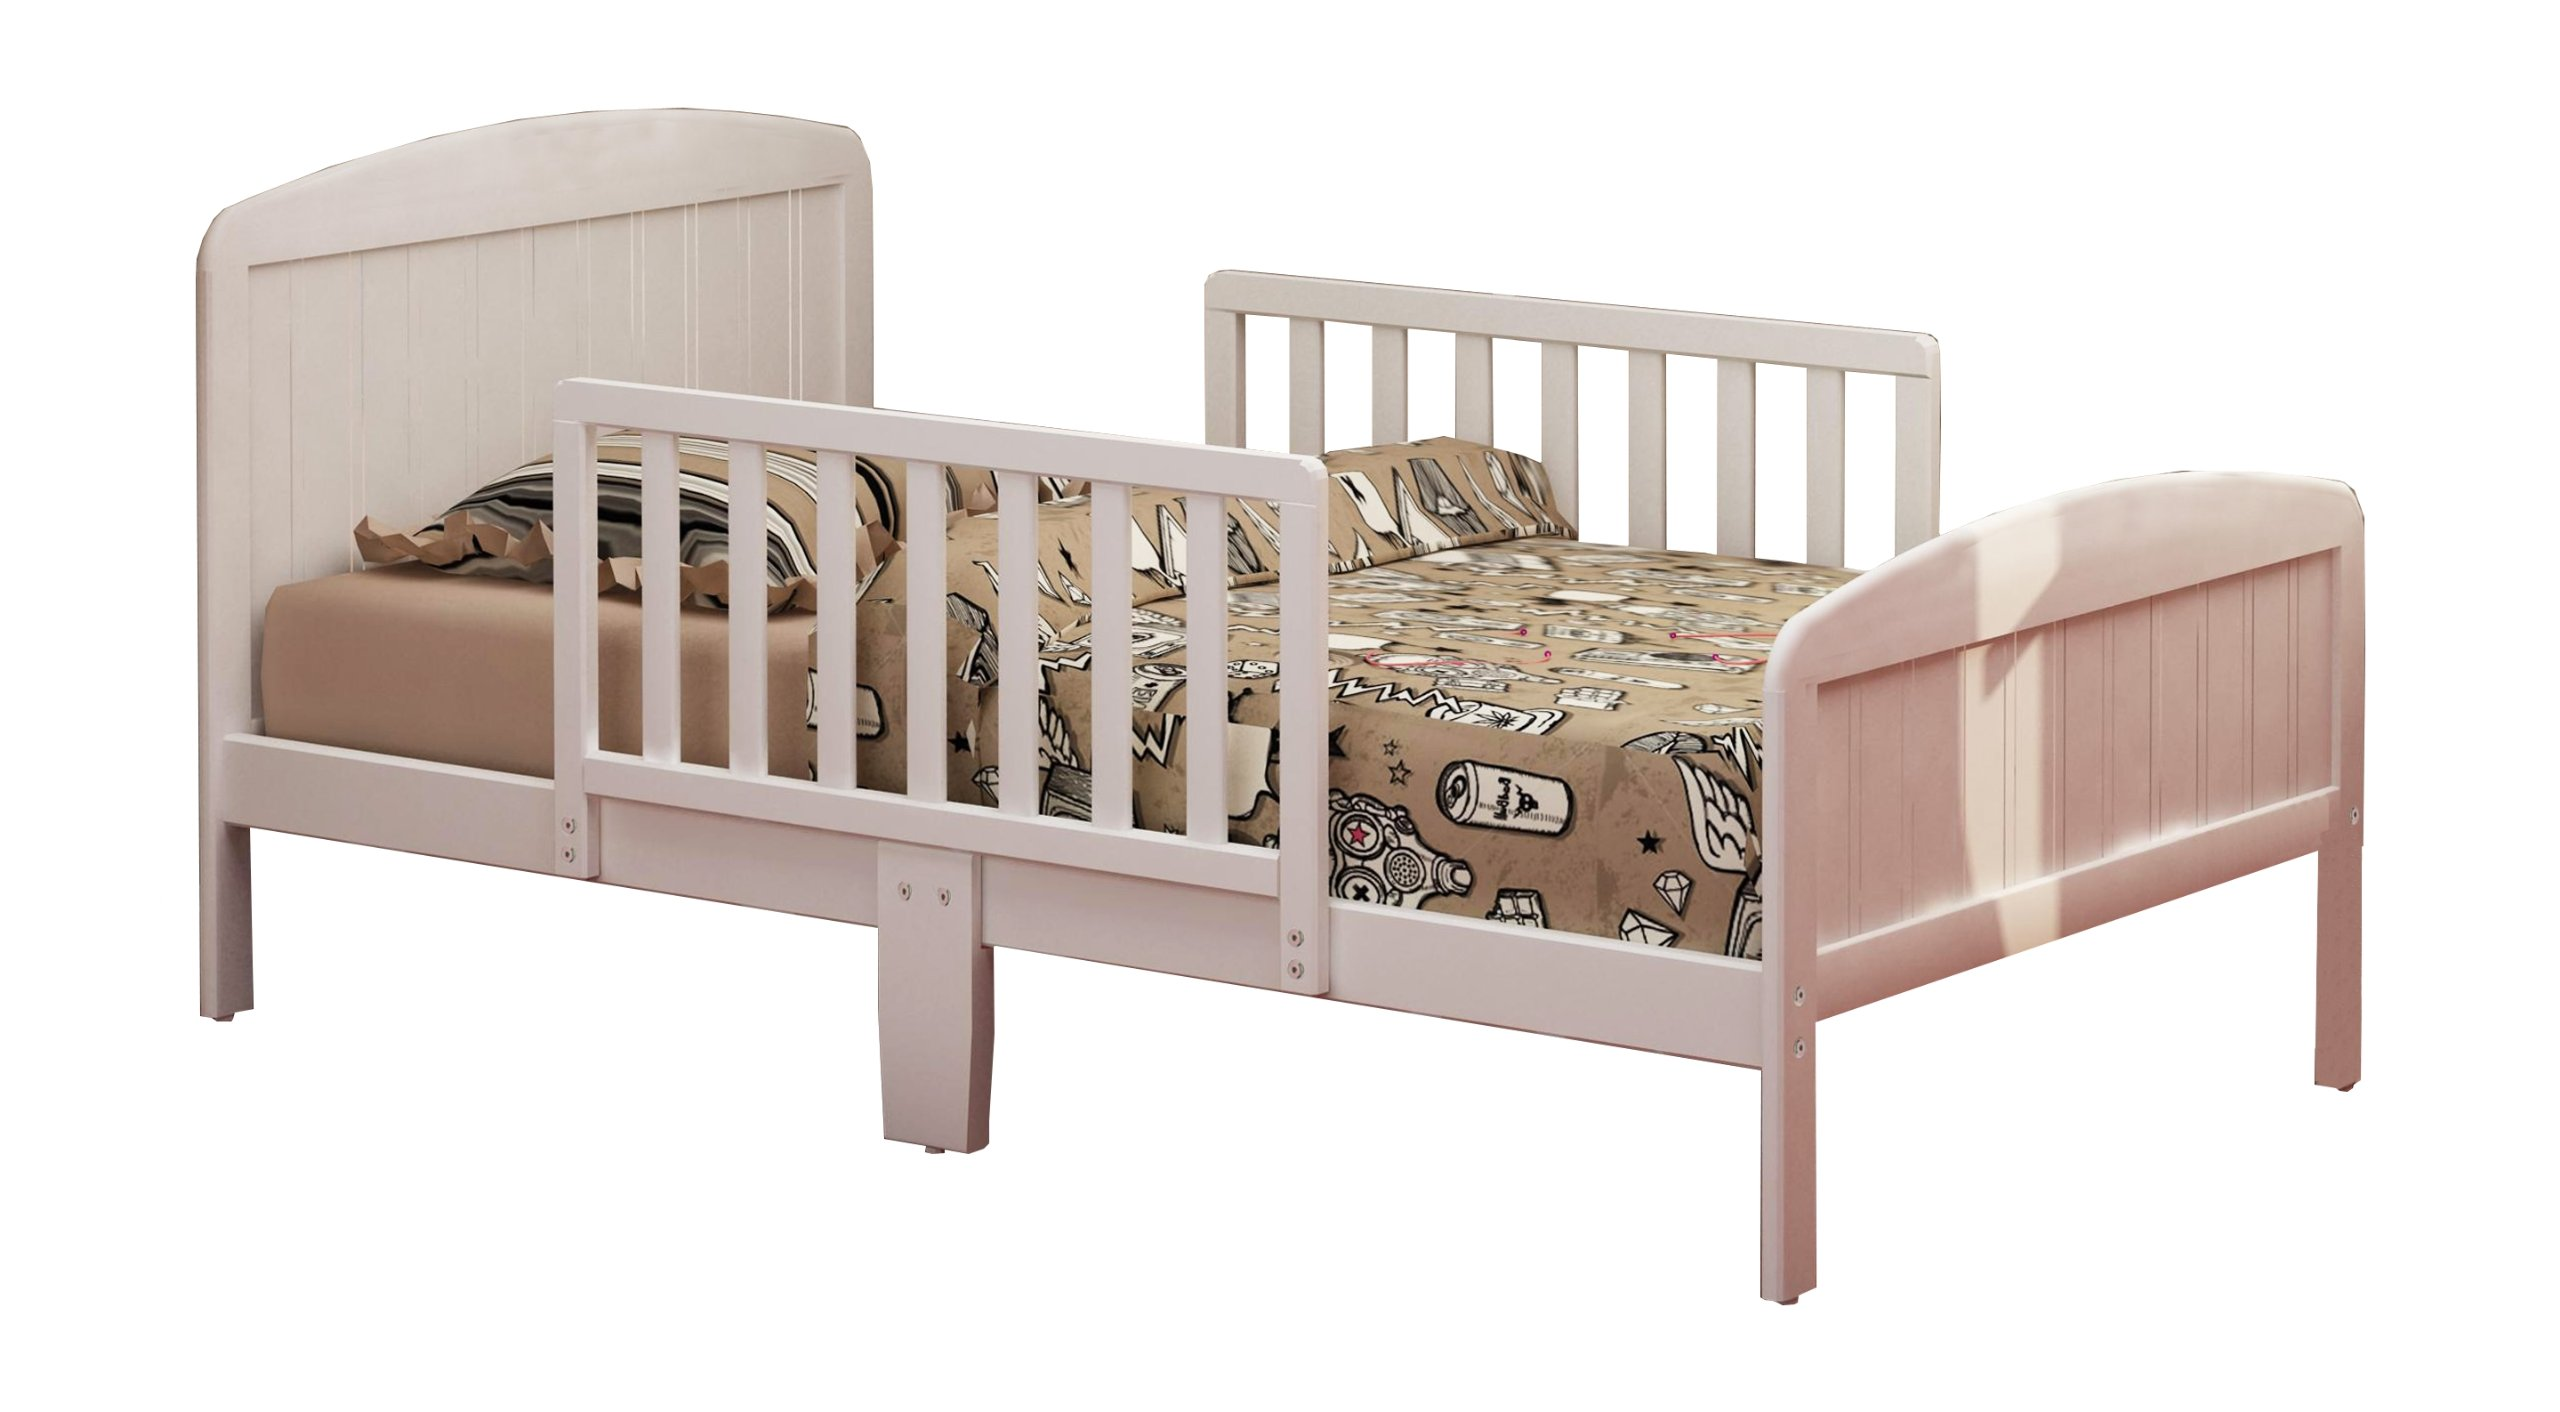 RUSSELL CHILDREN Products Harrisburg Wood Toddler Bed, Warm White by RUSSELL CHILDREN